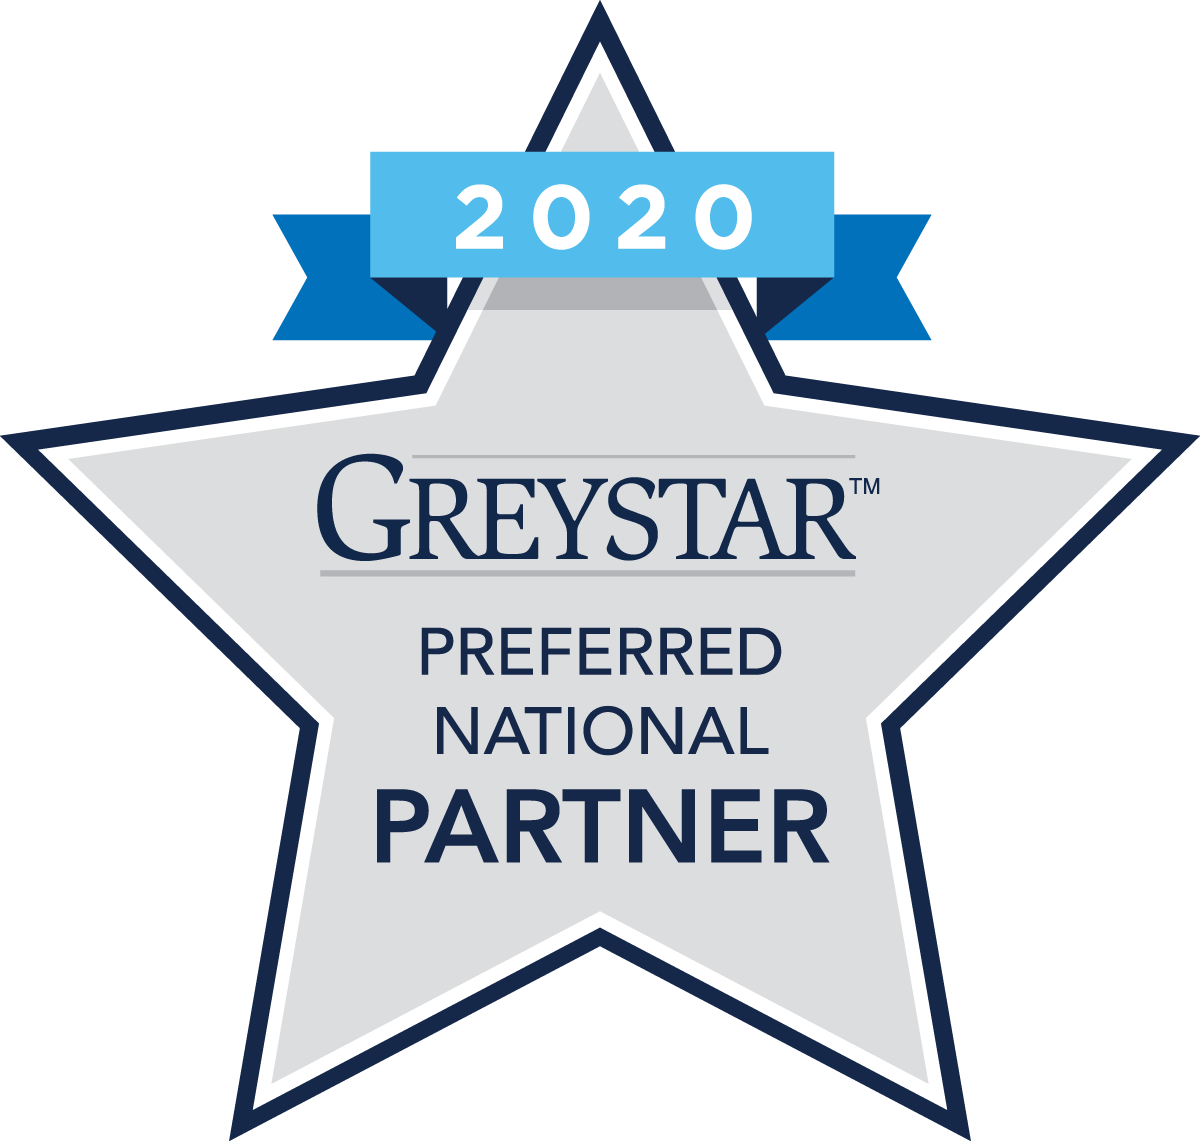 2020 Greystar Preferred National Partner